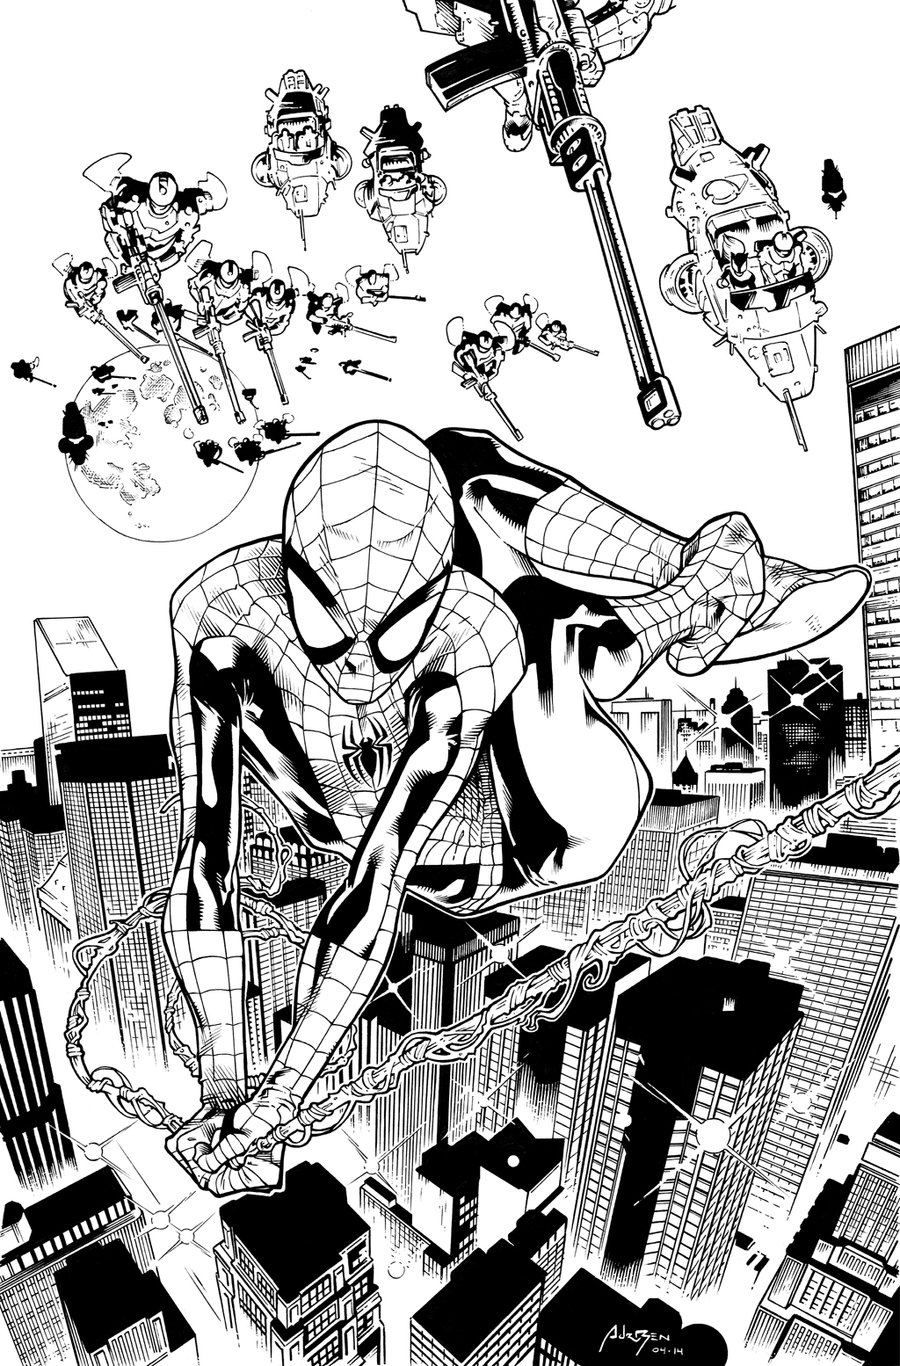 Spiderman Homecoming Coloring Pages Inks By Adr Ben Free